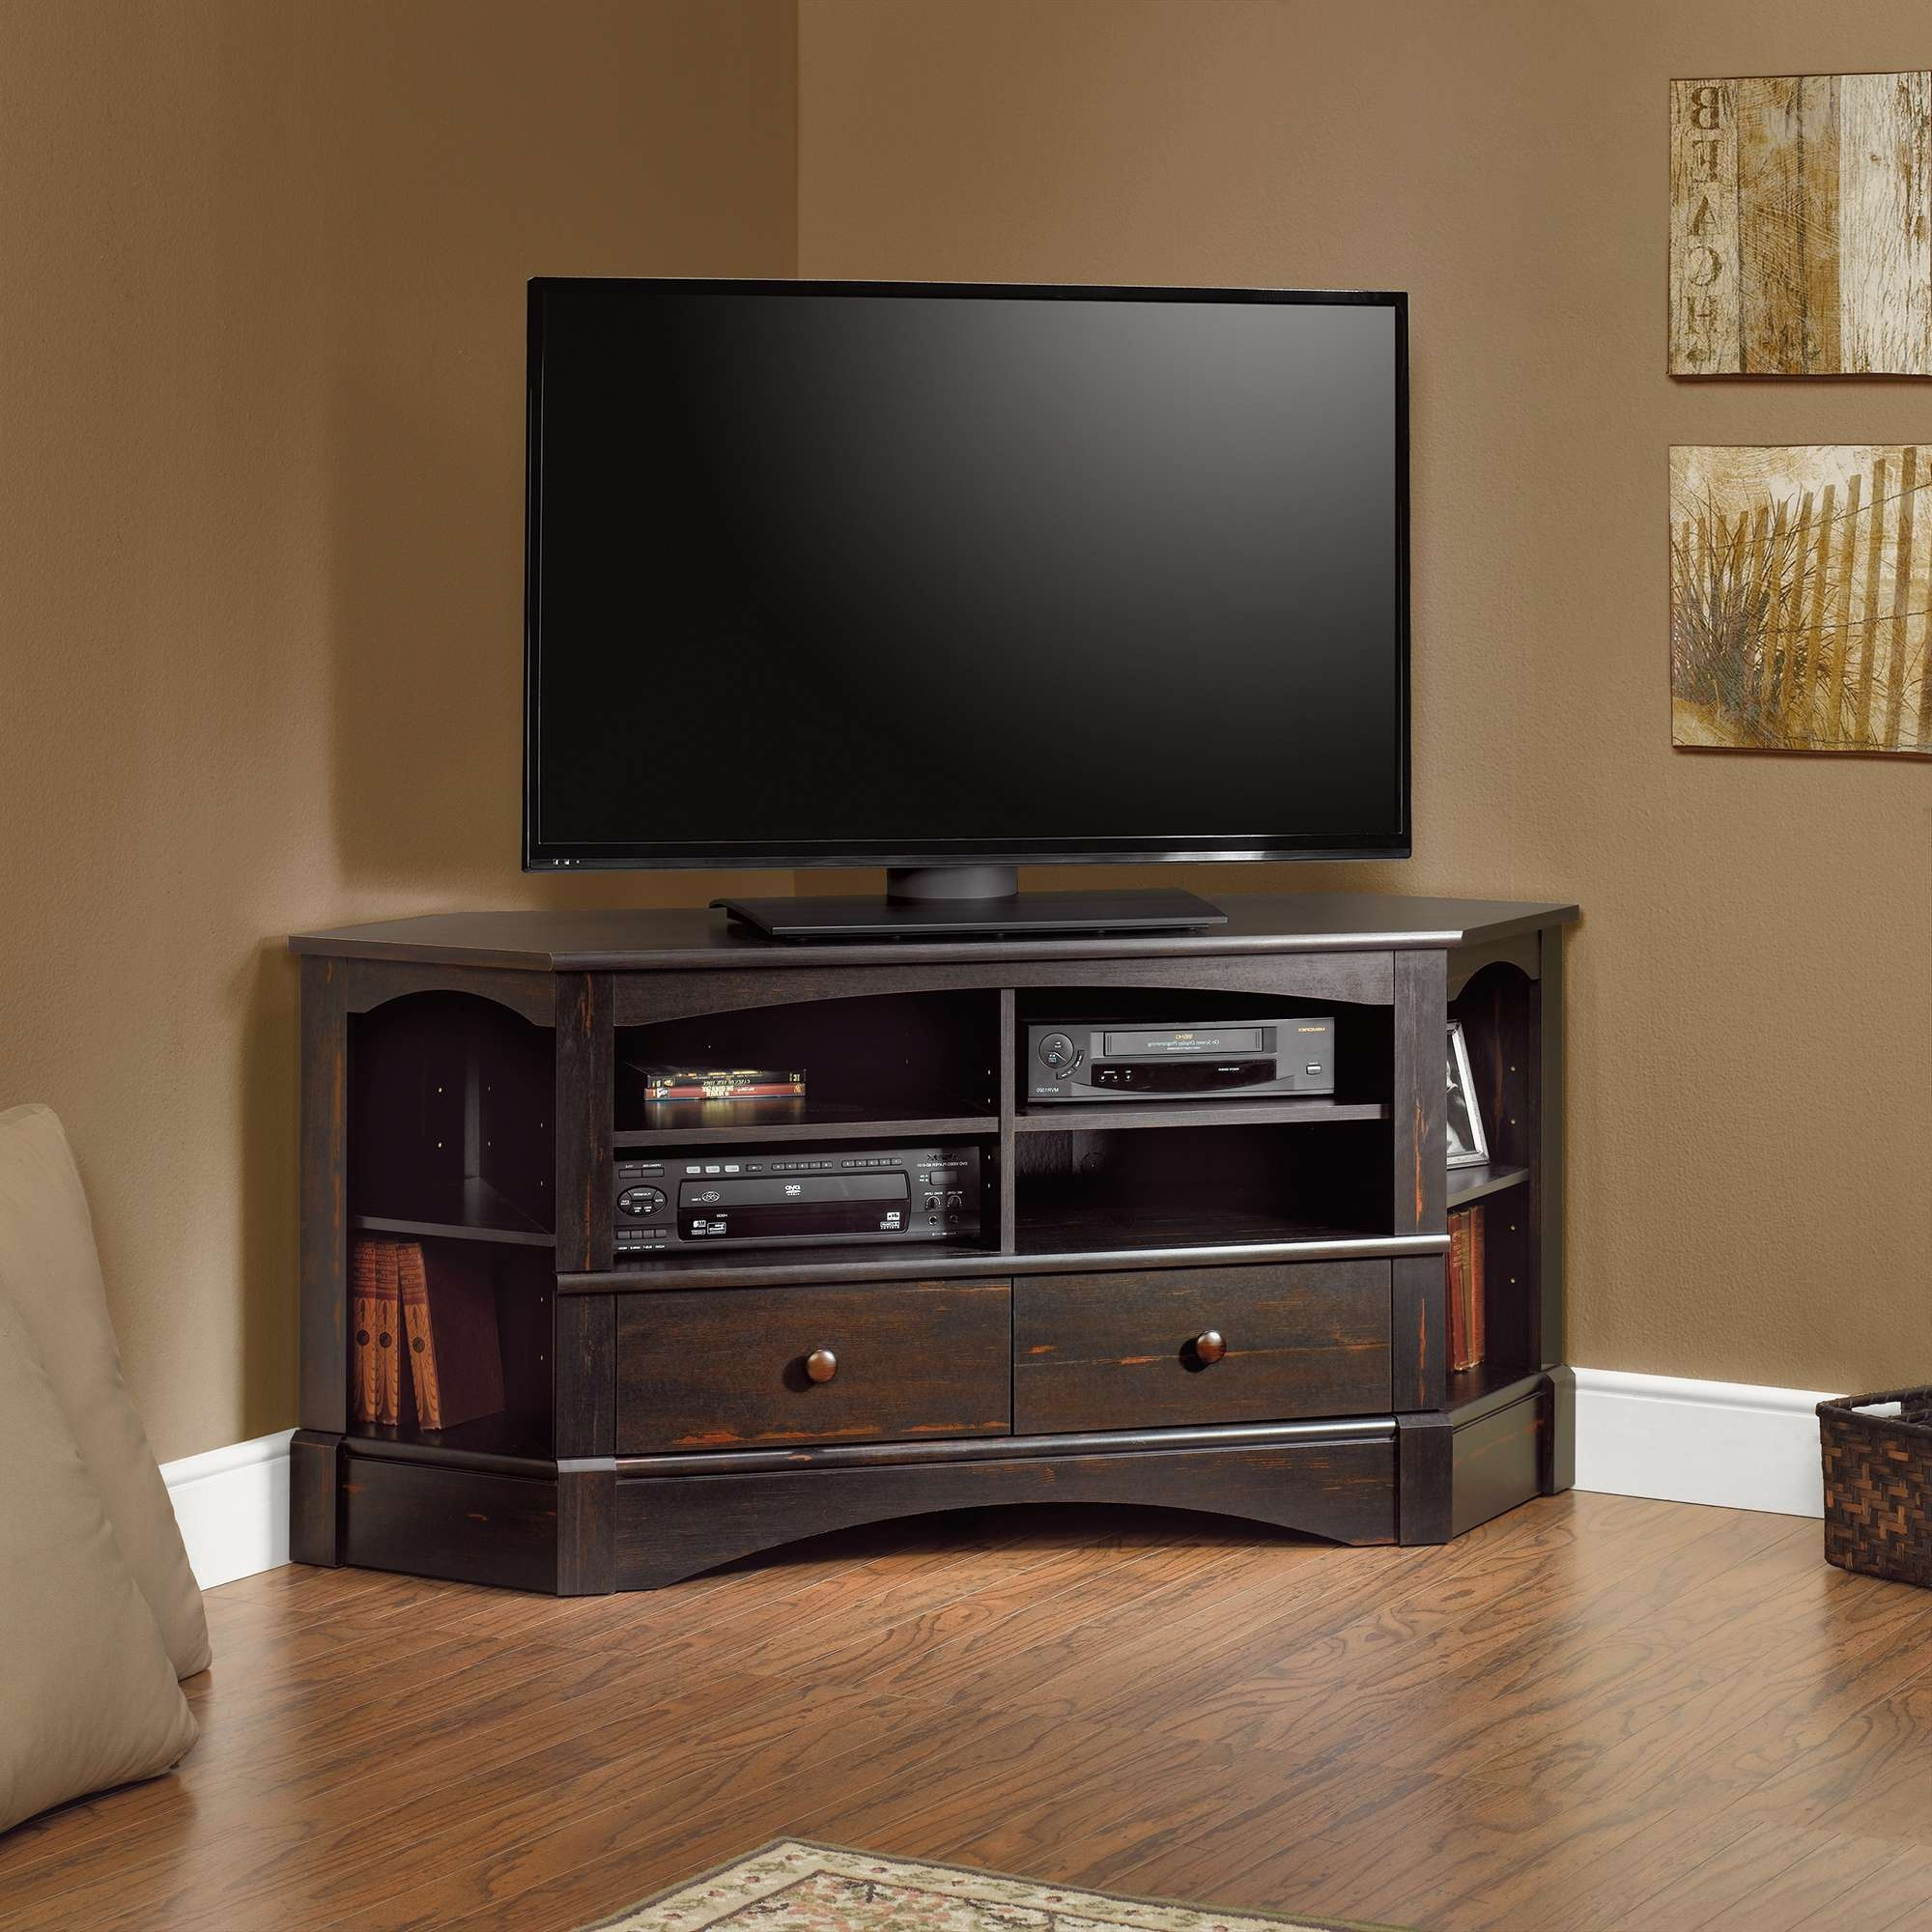 Harbor View | Corner Entertainment Credenza | 402902 | Sauder Pertaining To Corner Tv Cabinets For Flat Screens With Doors (View 6 of 20)